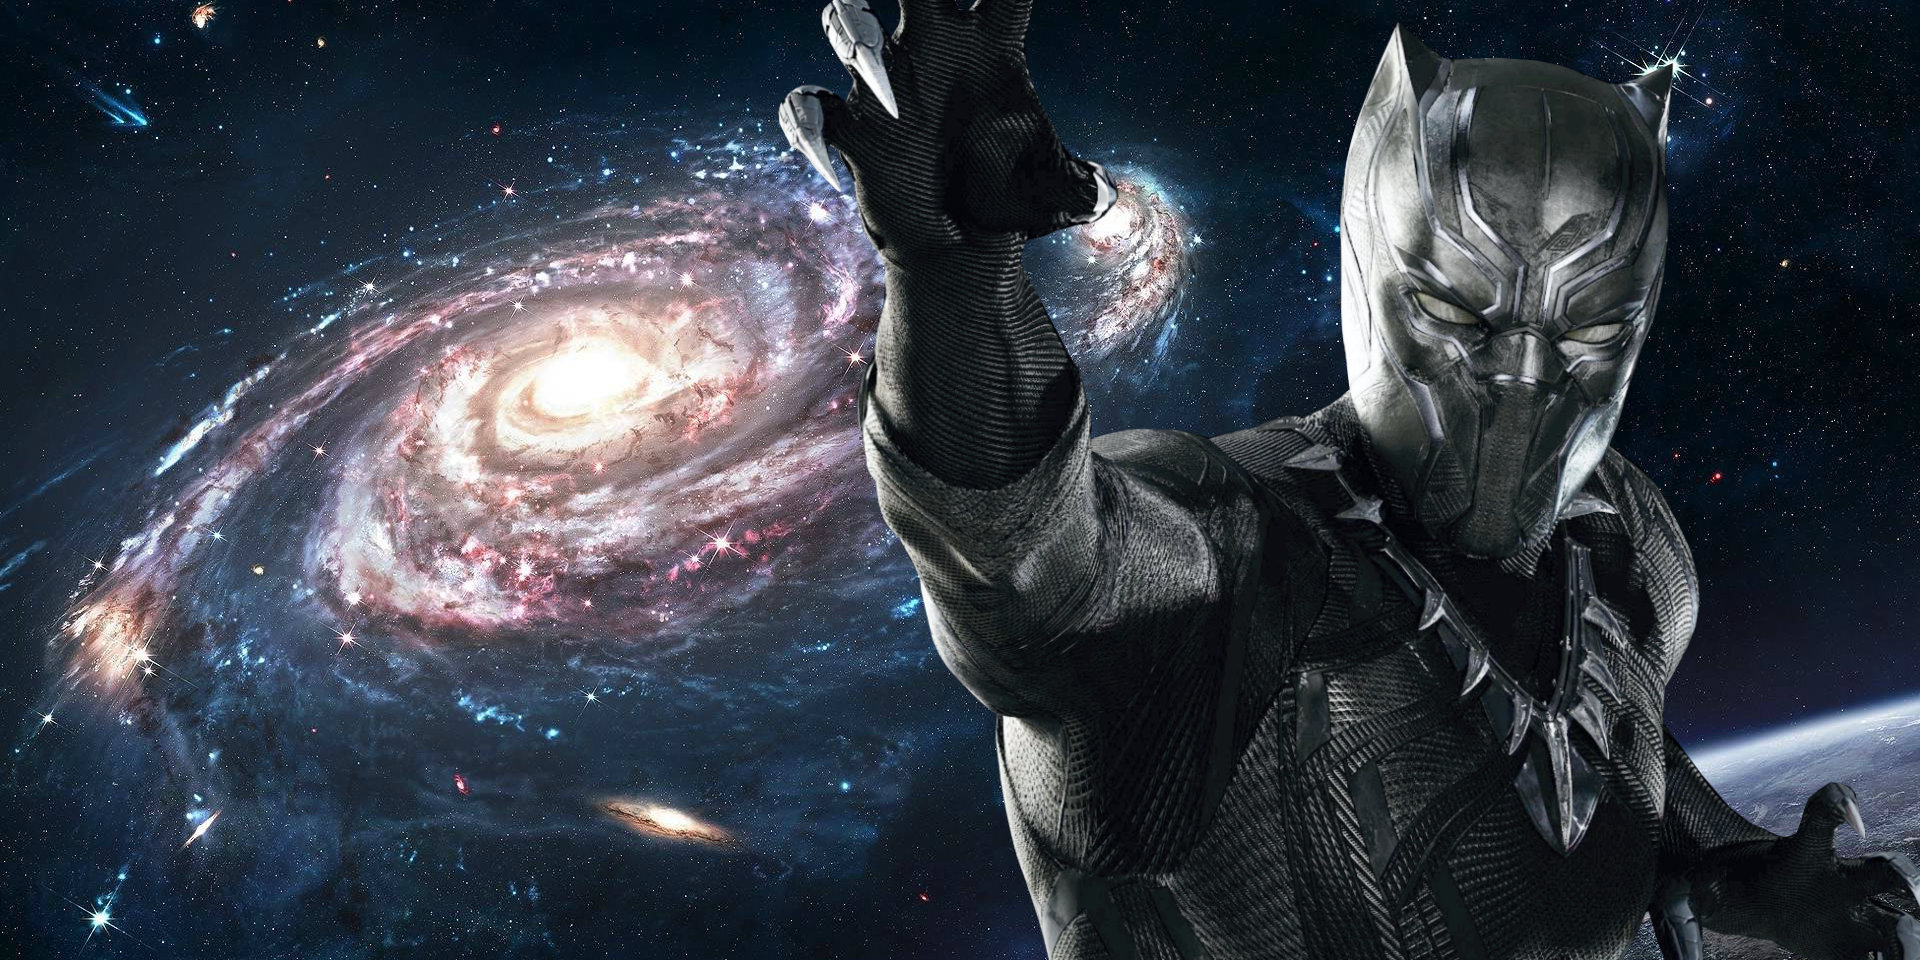 Black Panther Movie Explores Space, Says Forest Whitaker